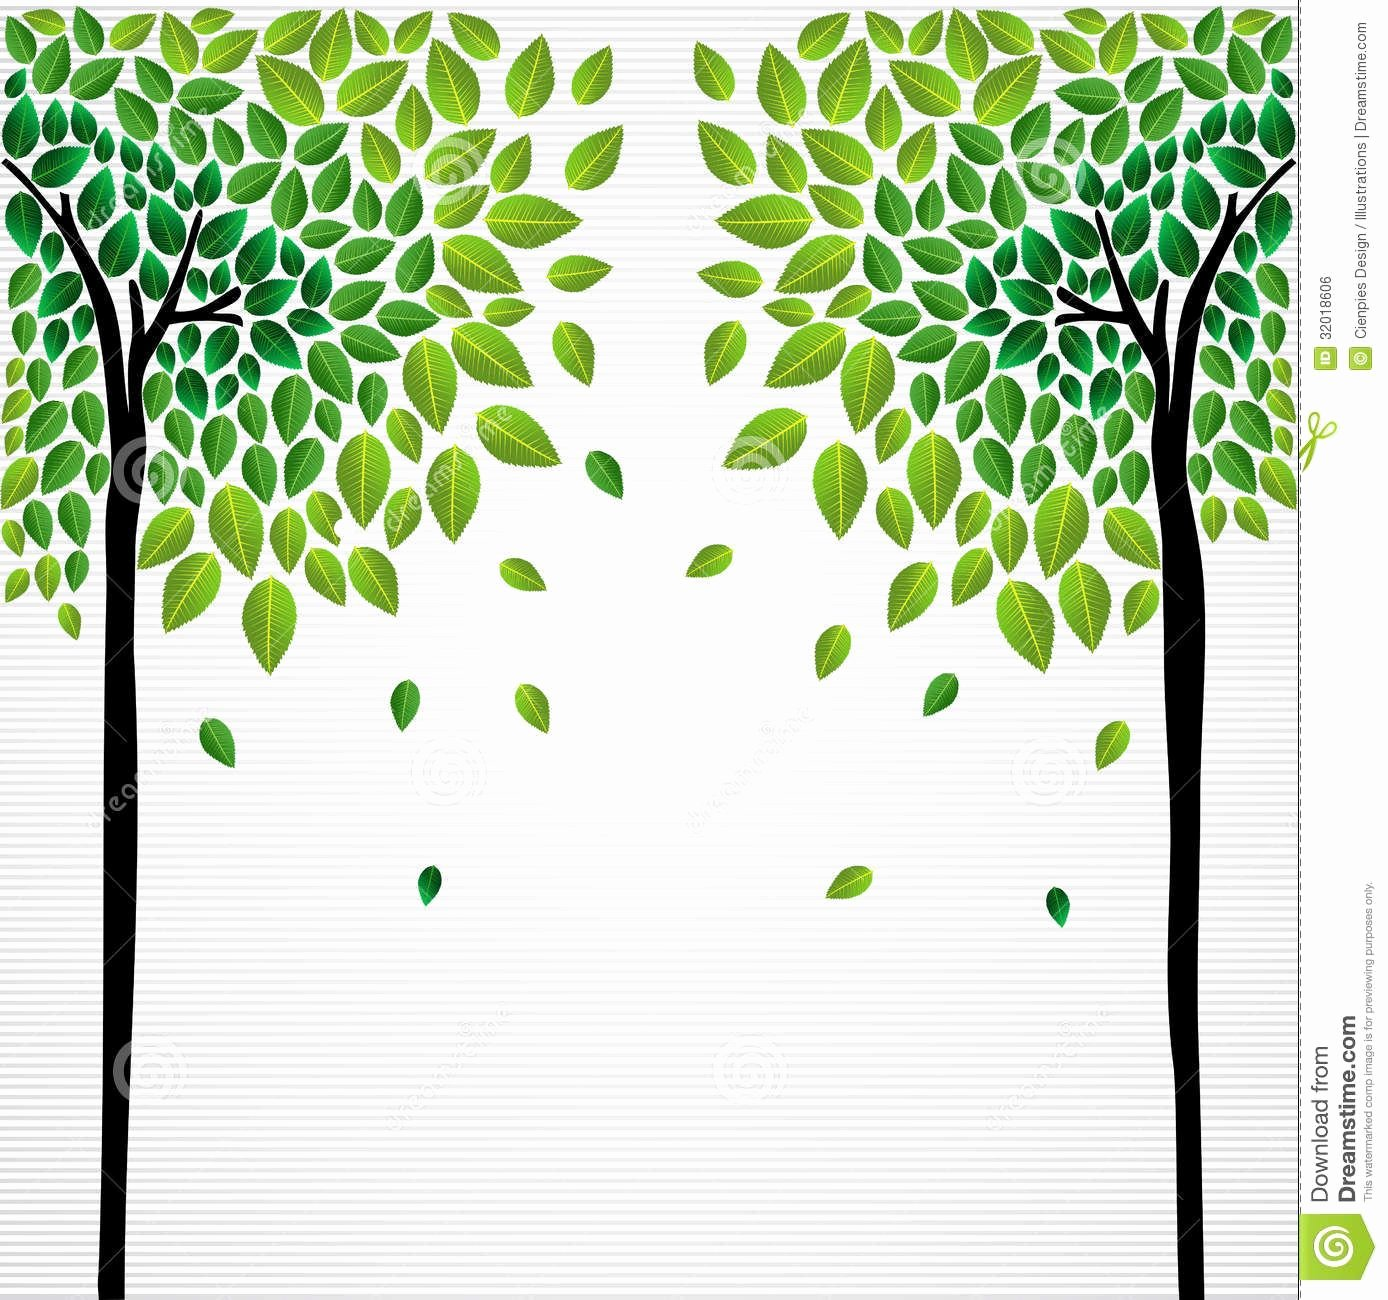 How to Draw A Simple Tree without Leaves New Drawing Trees without Leaves Google Search